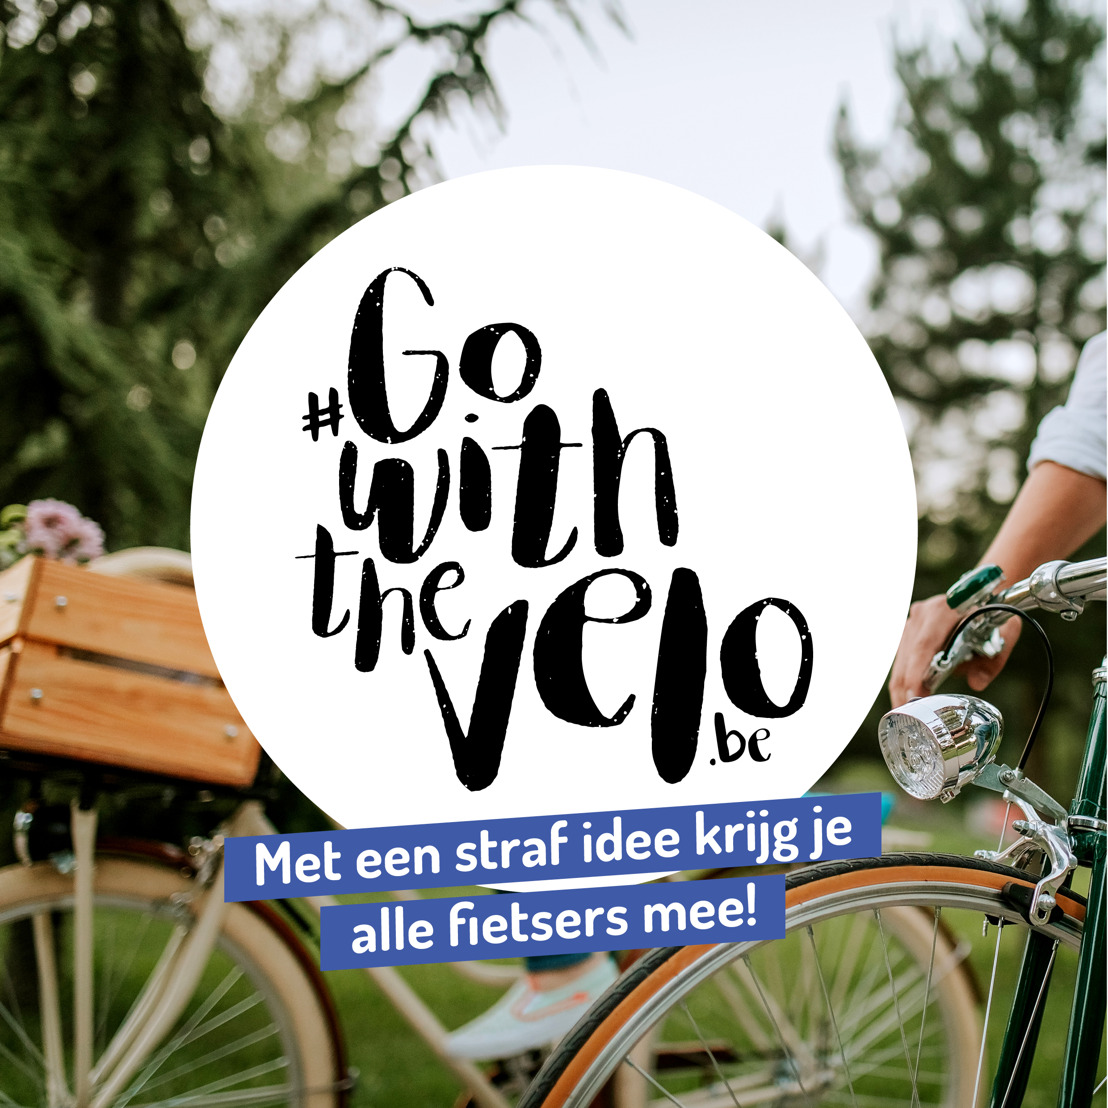 Go With The Velo steunt fietsherstel in Sint-Amandsberg!